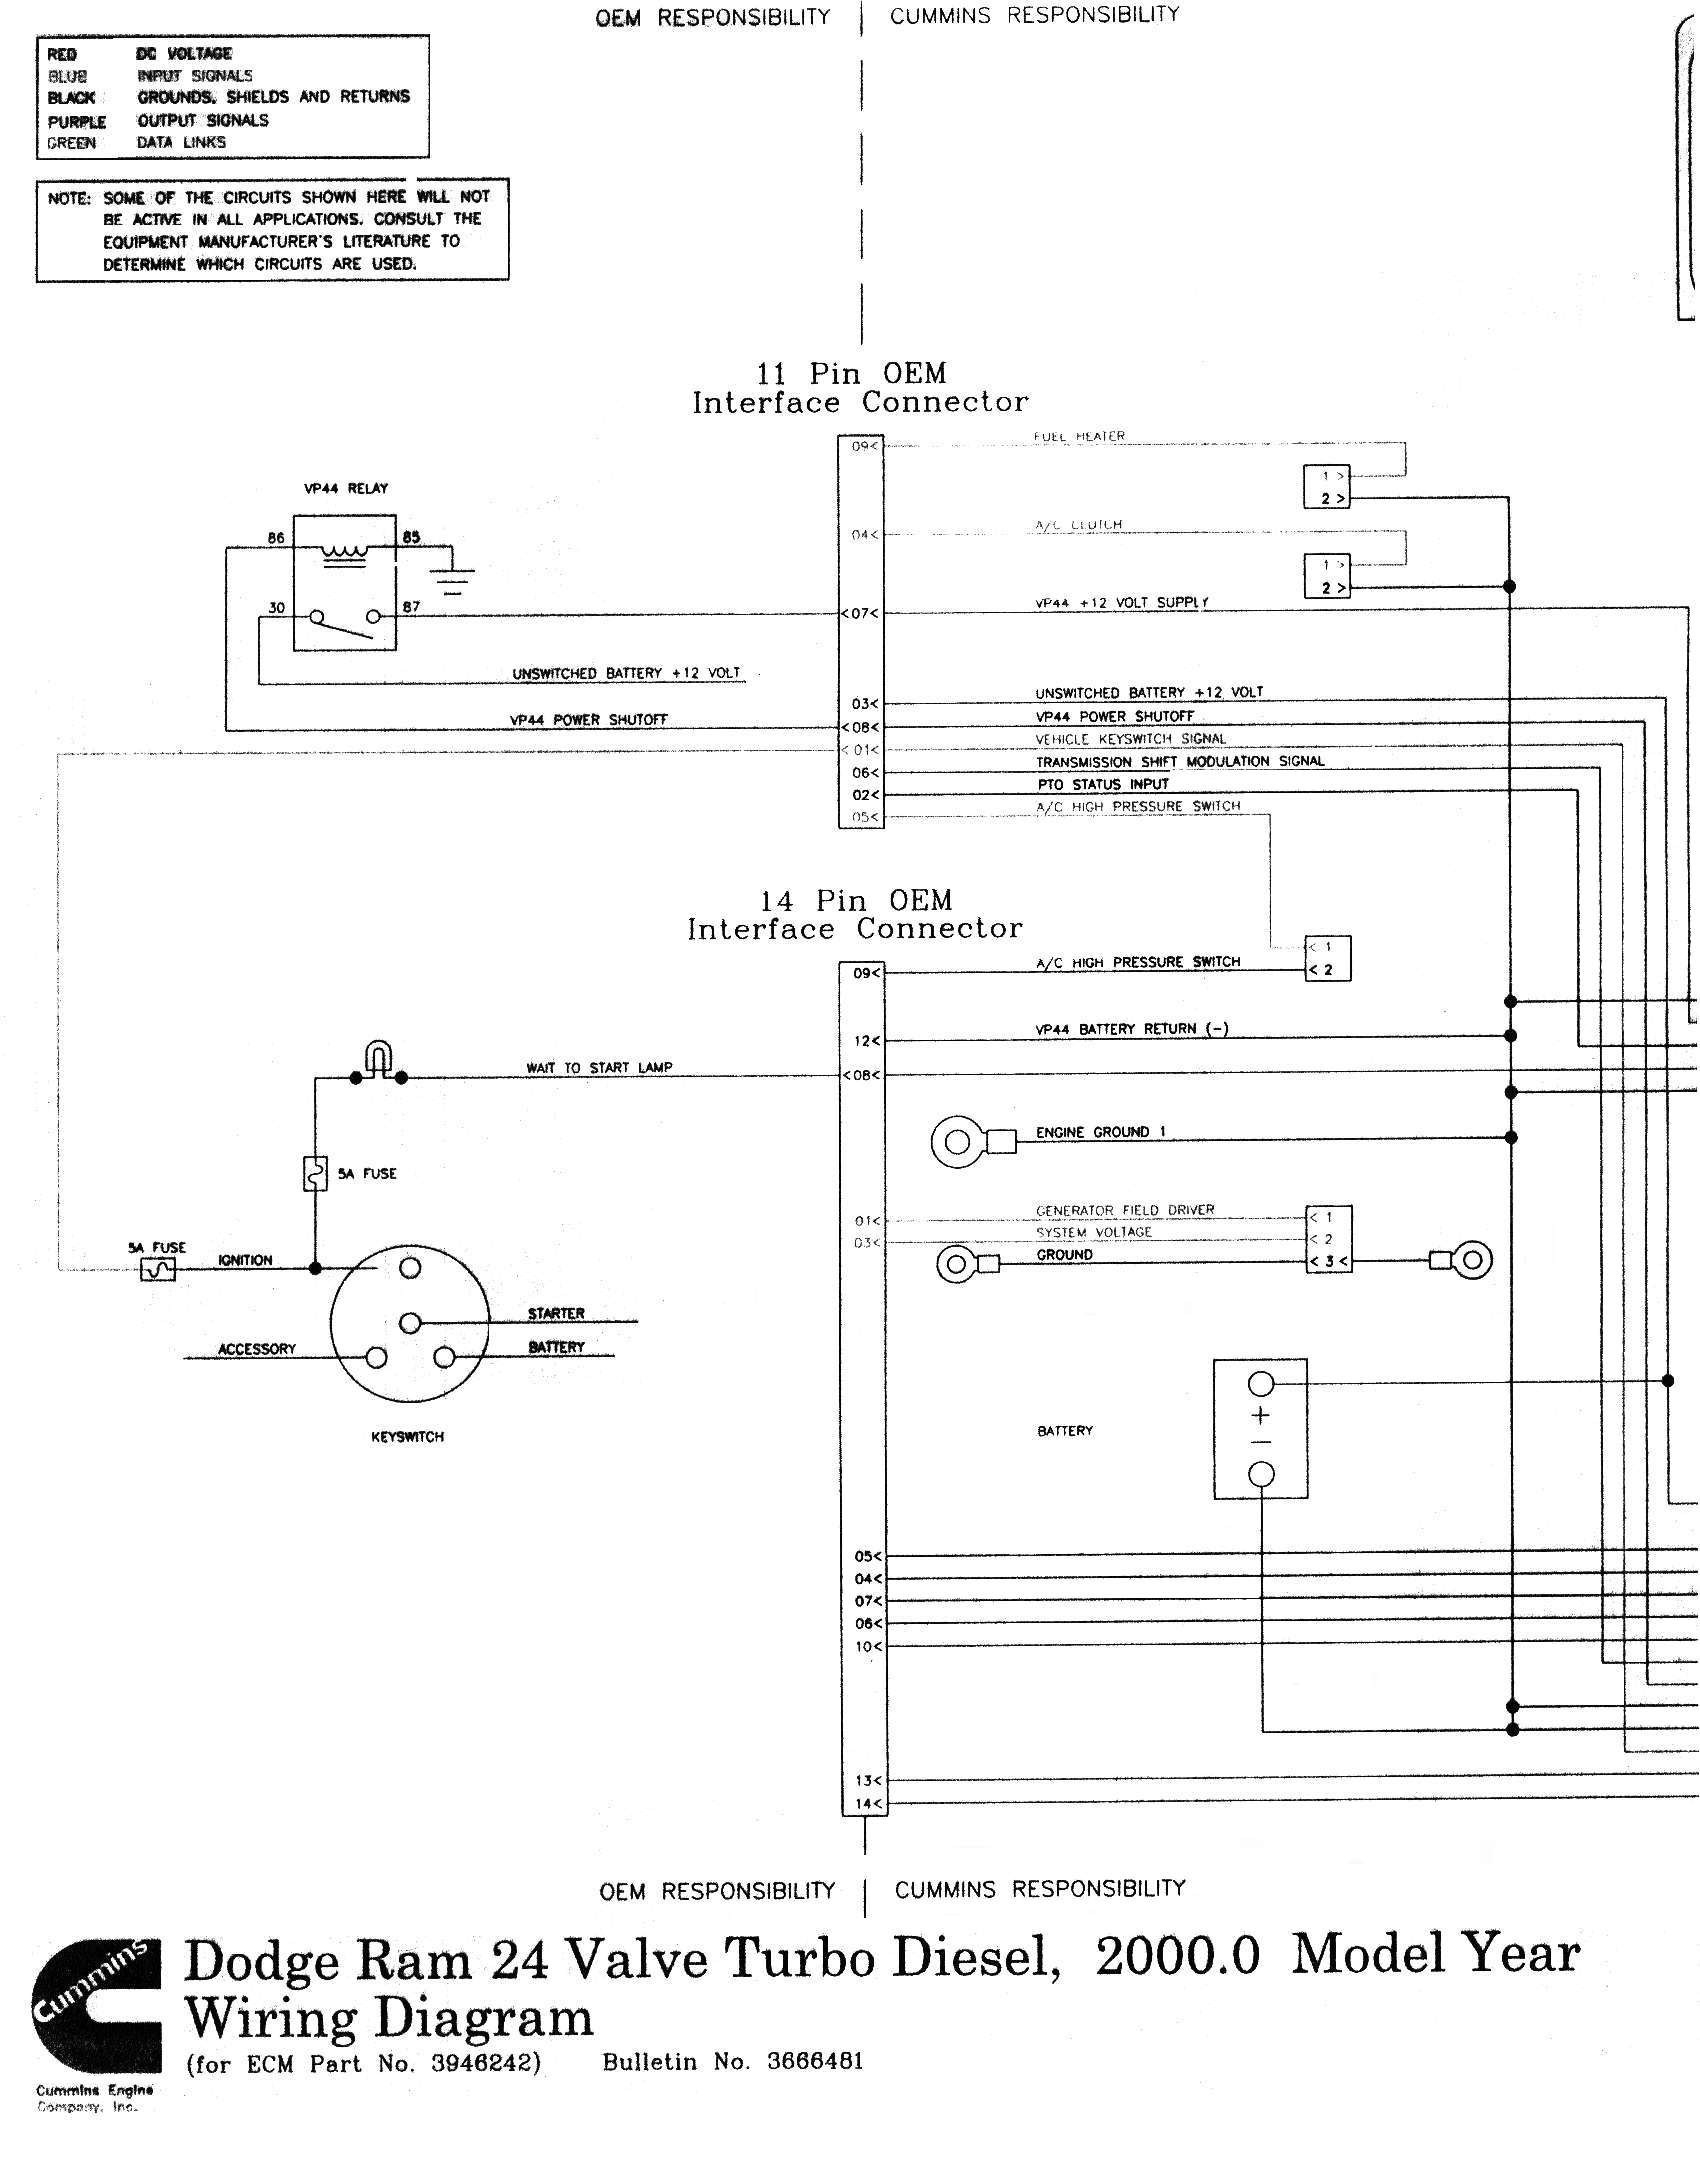 [DIAGRAM_3ER]  RY_7890] Wiring Diagram For 2005 Dodge Ram 2500 Schematic Wiring | 2005 Dodge 2500 Wiring Diagram |  | Hete Elec Ogeno Dome Mohammedshrine Librar Wiring 101